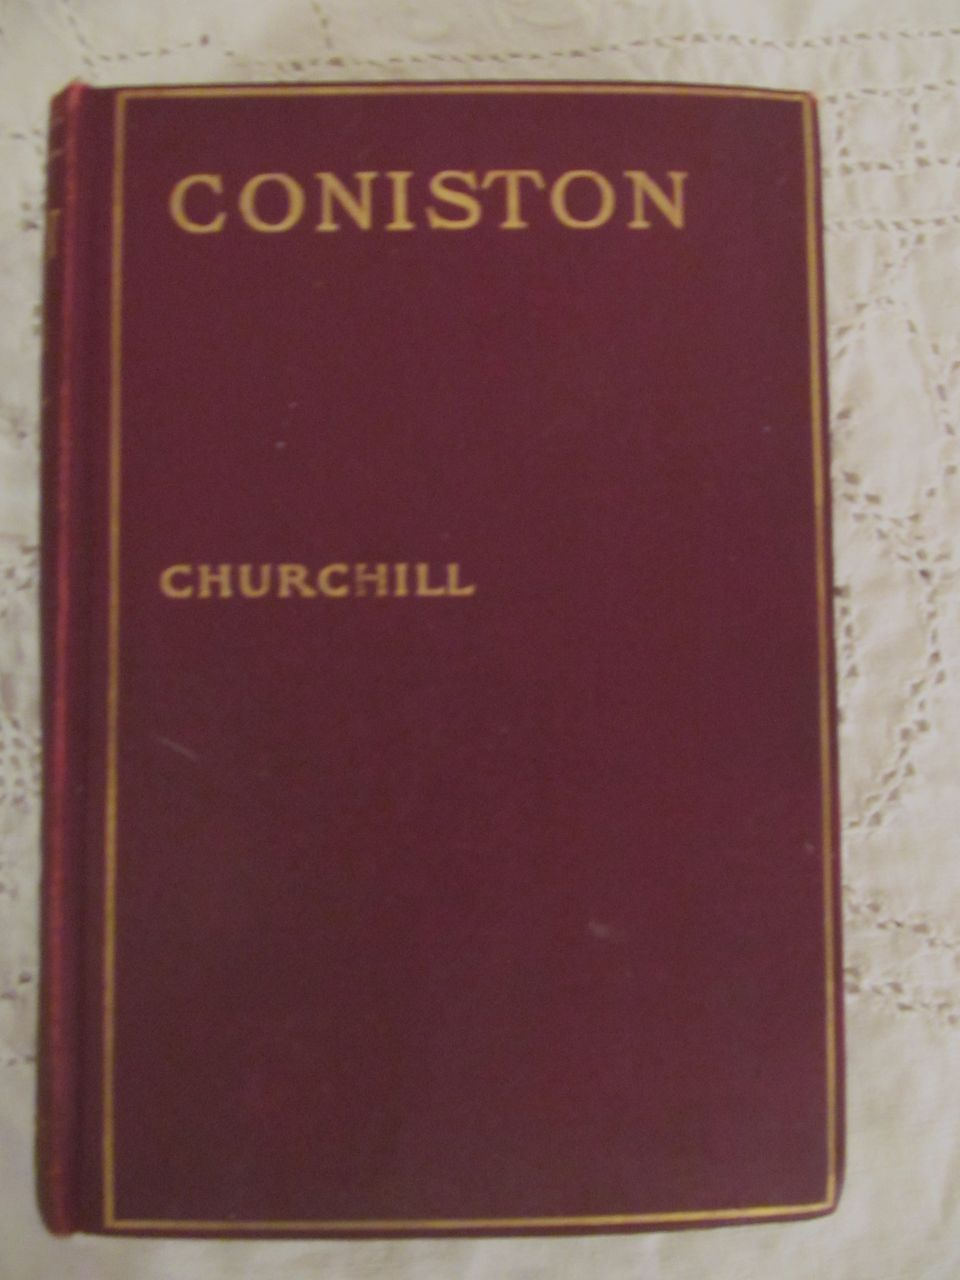 Coniston by Winston Churchill, 1906, MacMillan